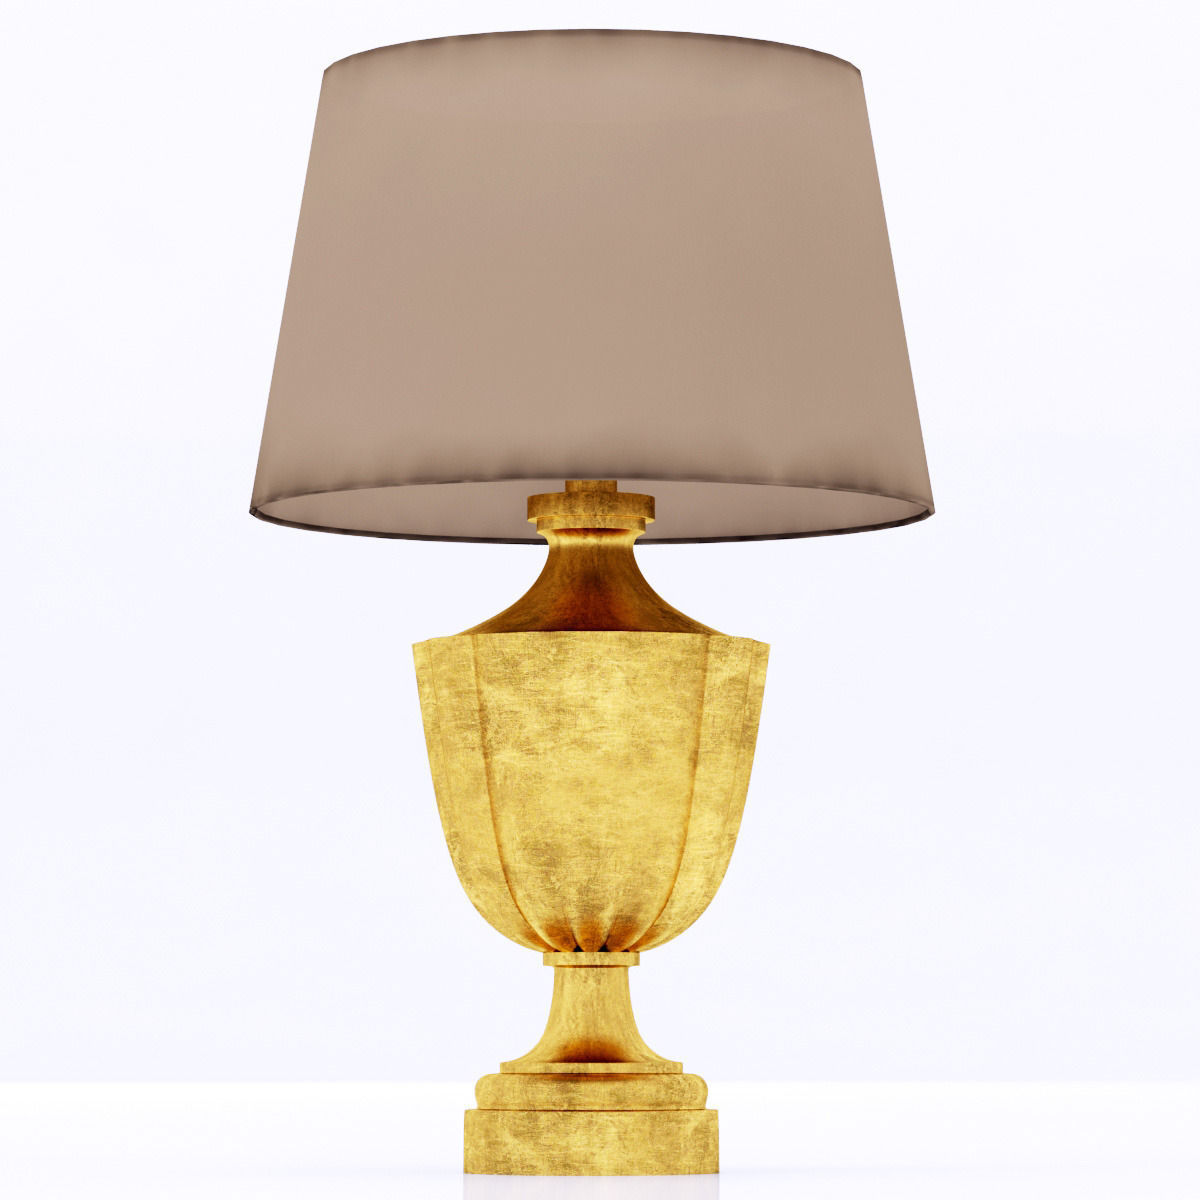 Circa Lighting Marlborough Table Lamp Model